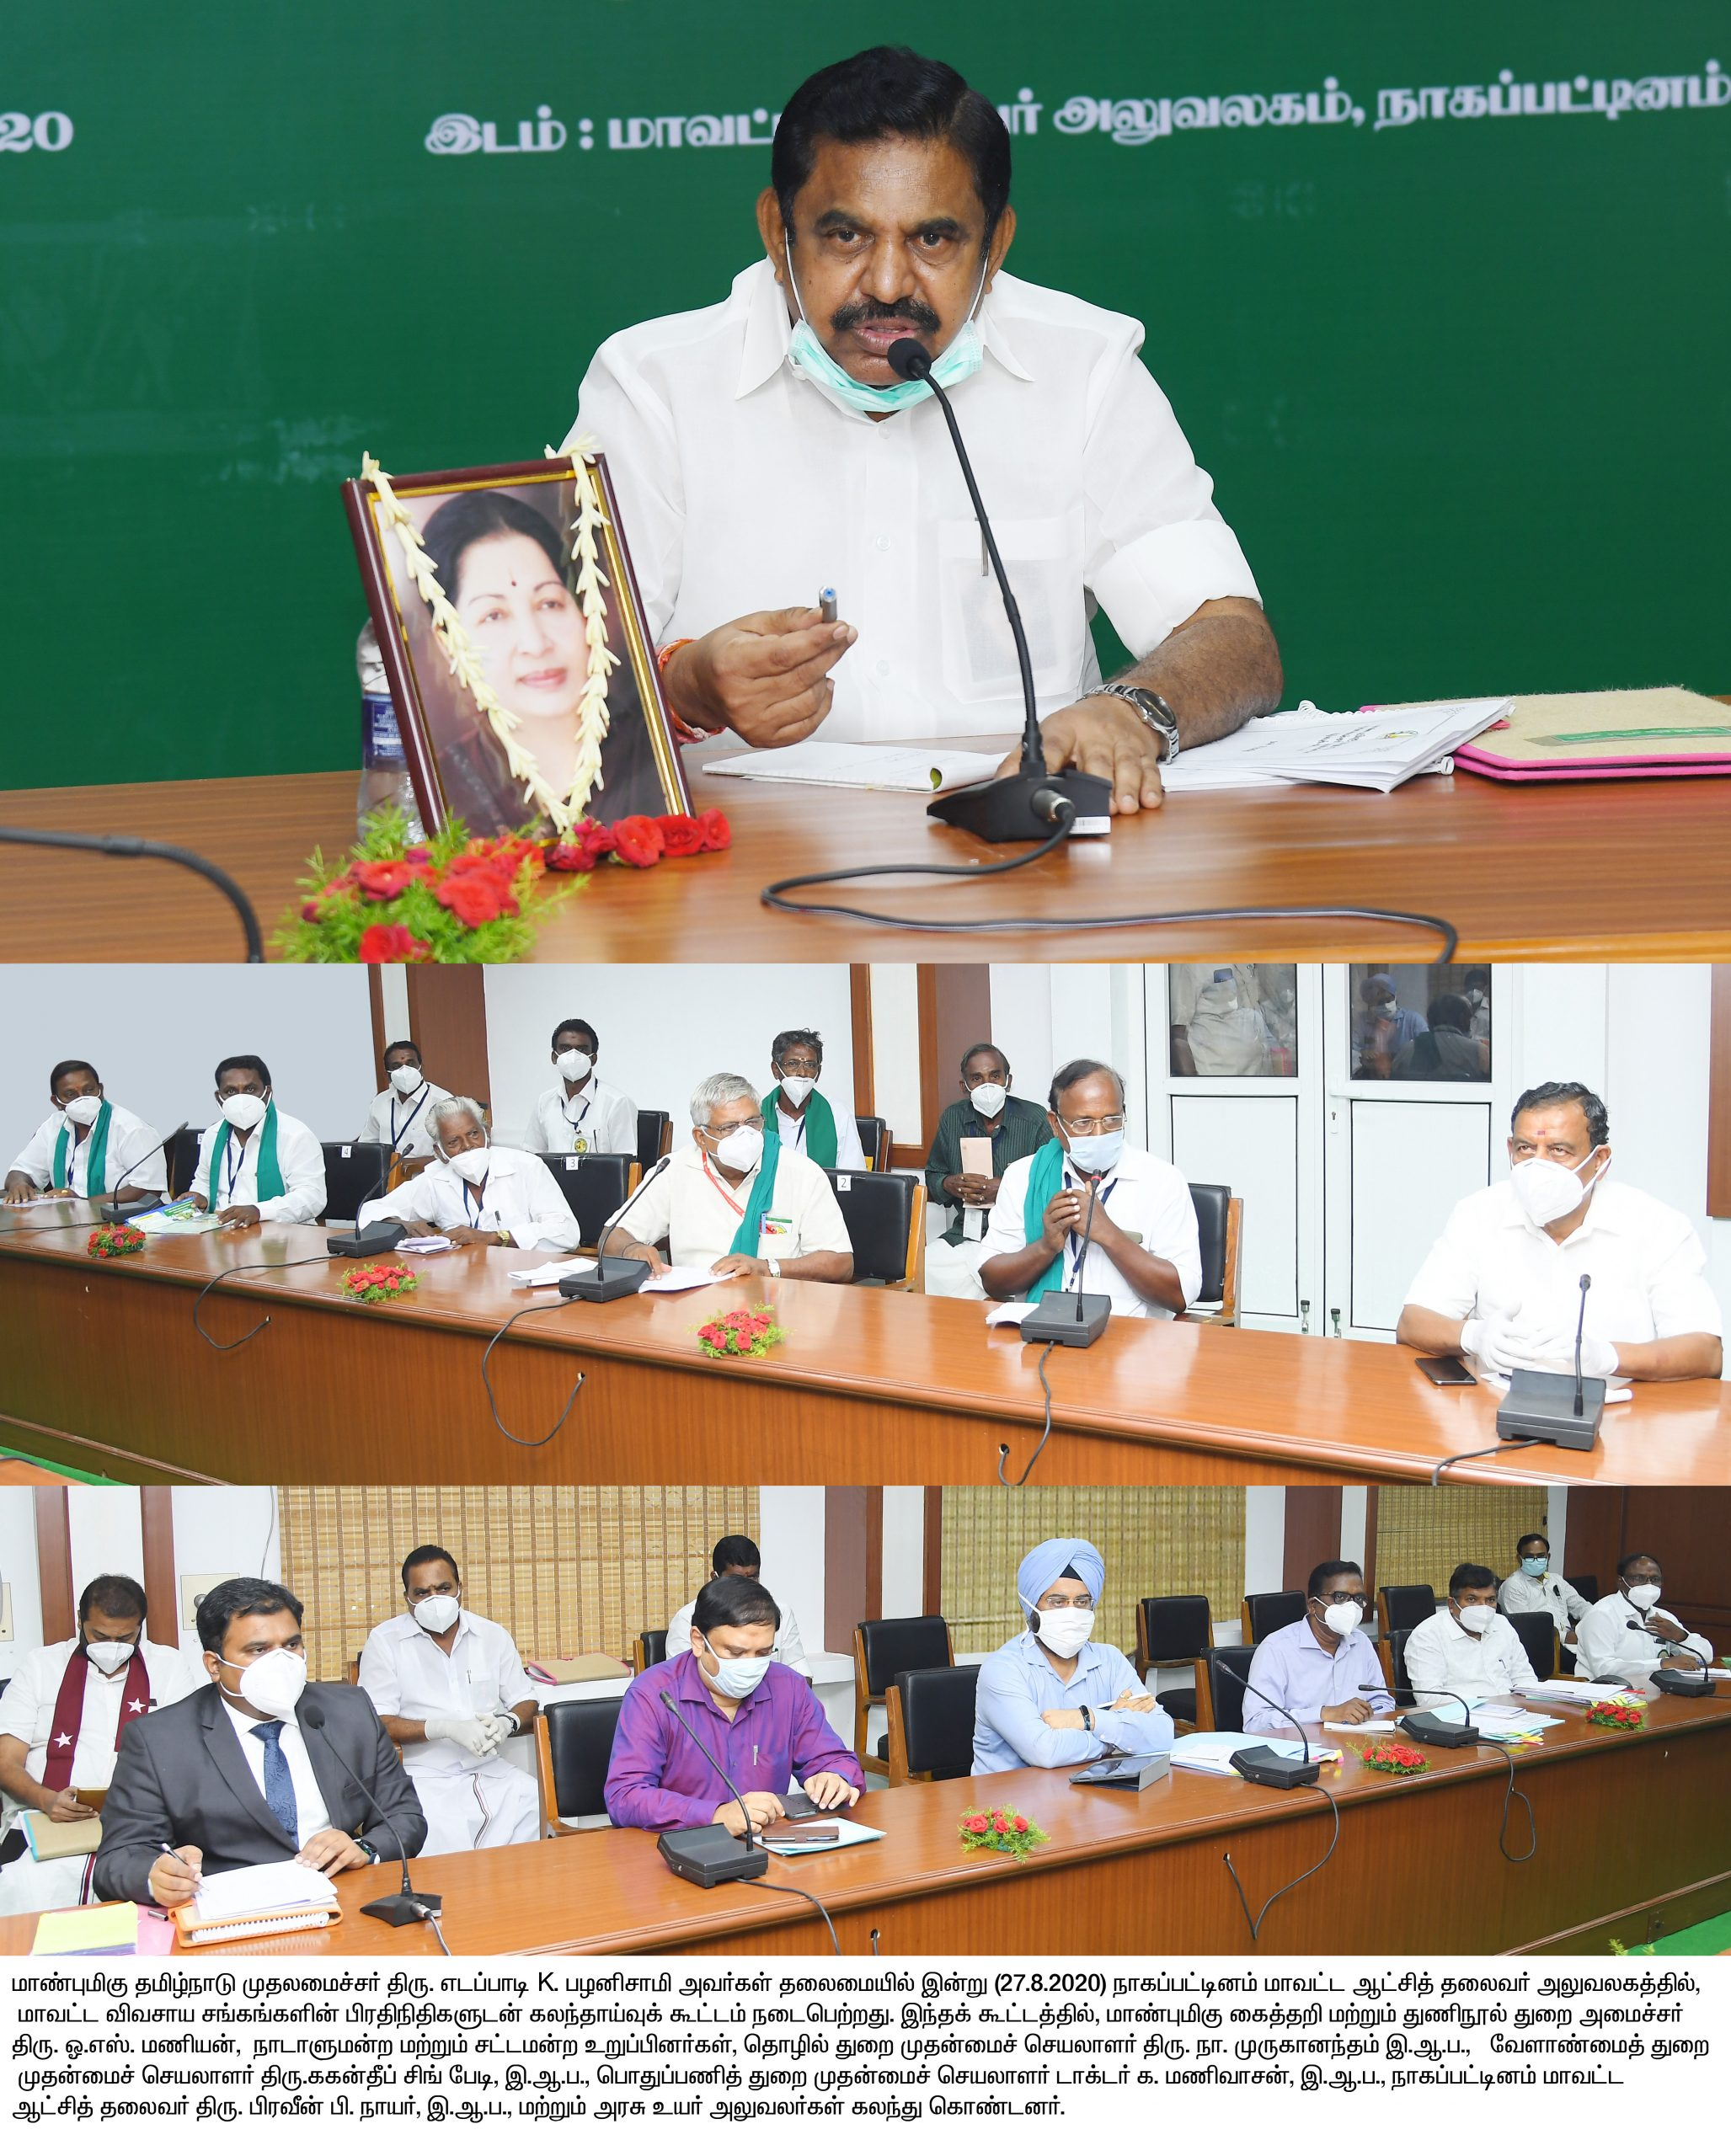 Hon'ble Chief Minister of Tamil Nadu Chaired a Review Meeting on Development Projects and Corona Prevention Activities in nagapattinam Districts 27-08-20